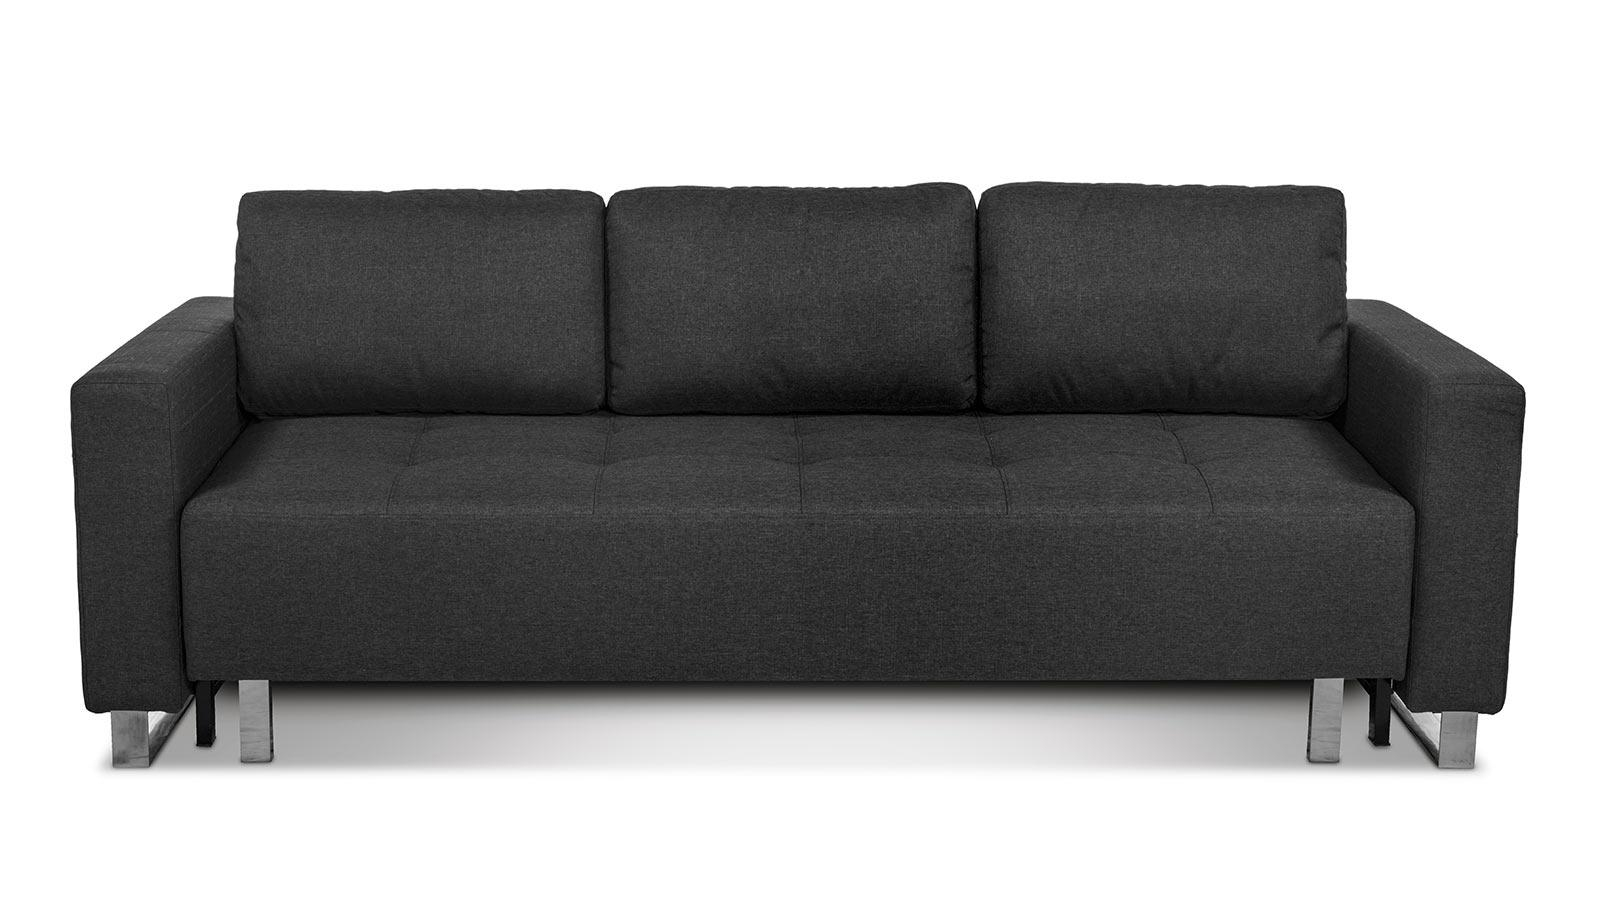 Epic Castro Convertible Sofa Bed 79 For Your Sofas And Couches Regarding Castro Convertible Couches (View 11 of 20)